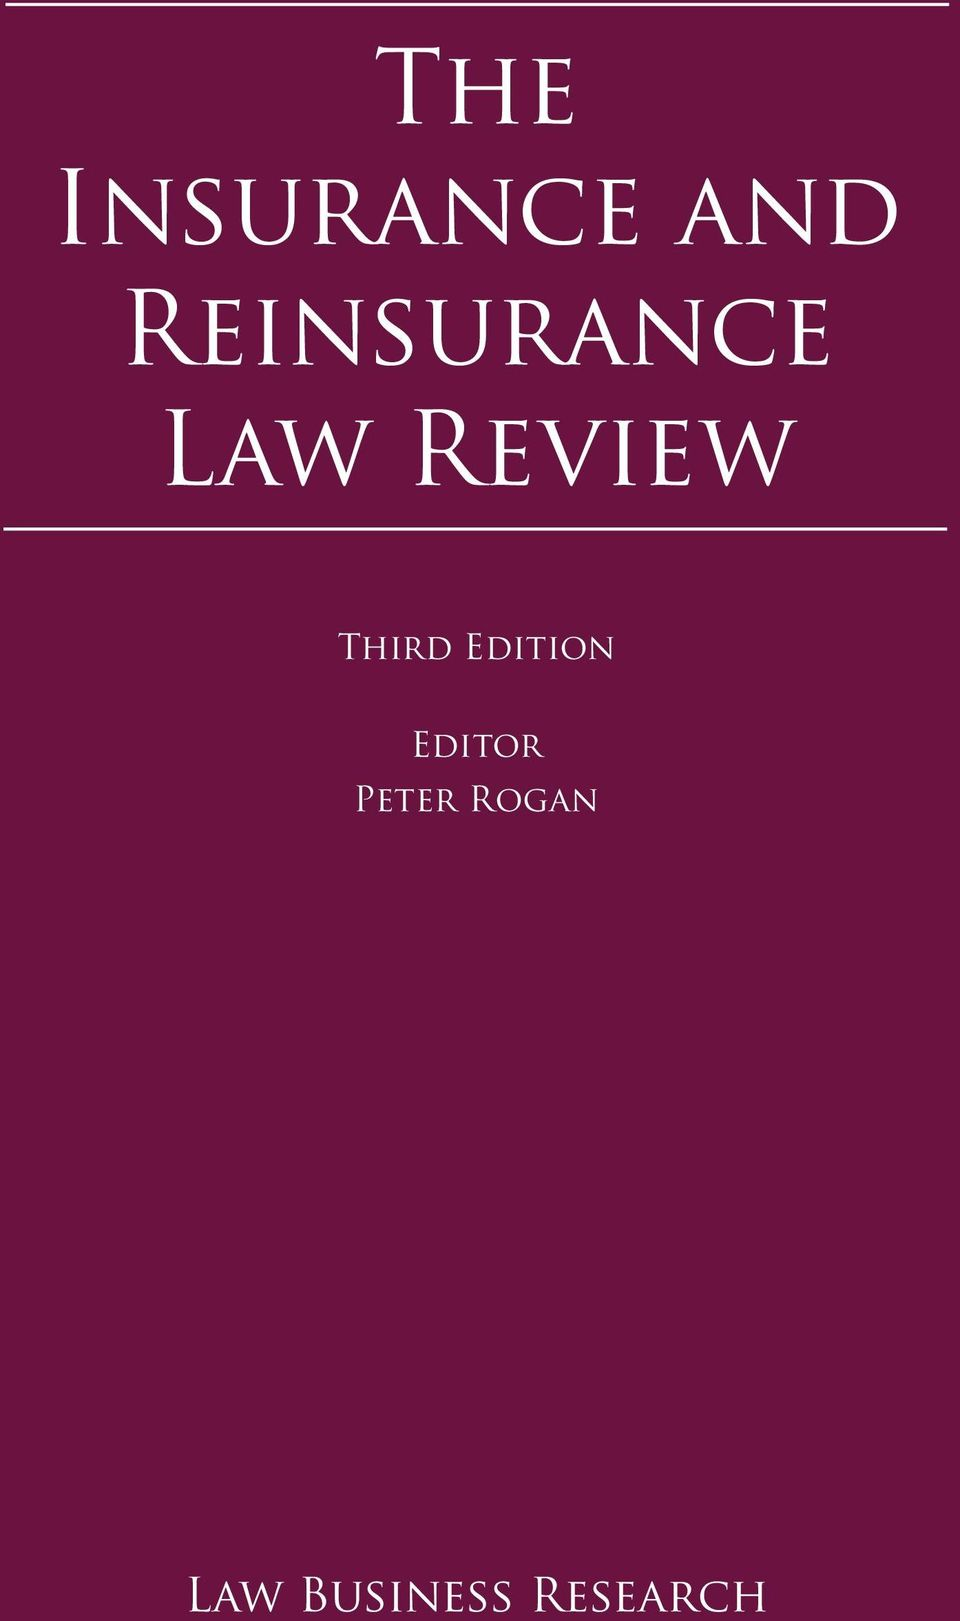 Law Review Third Edition